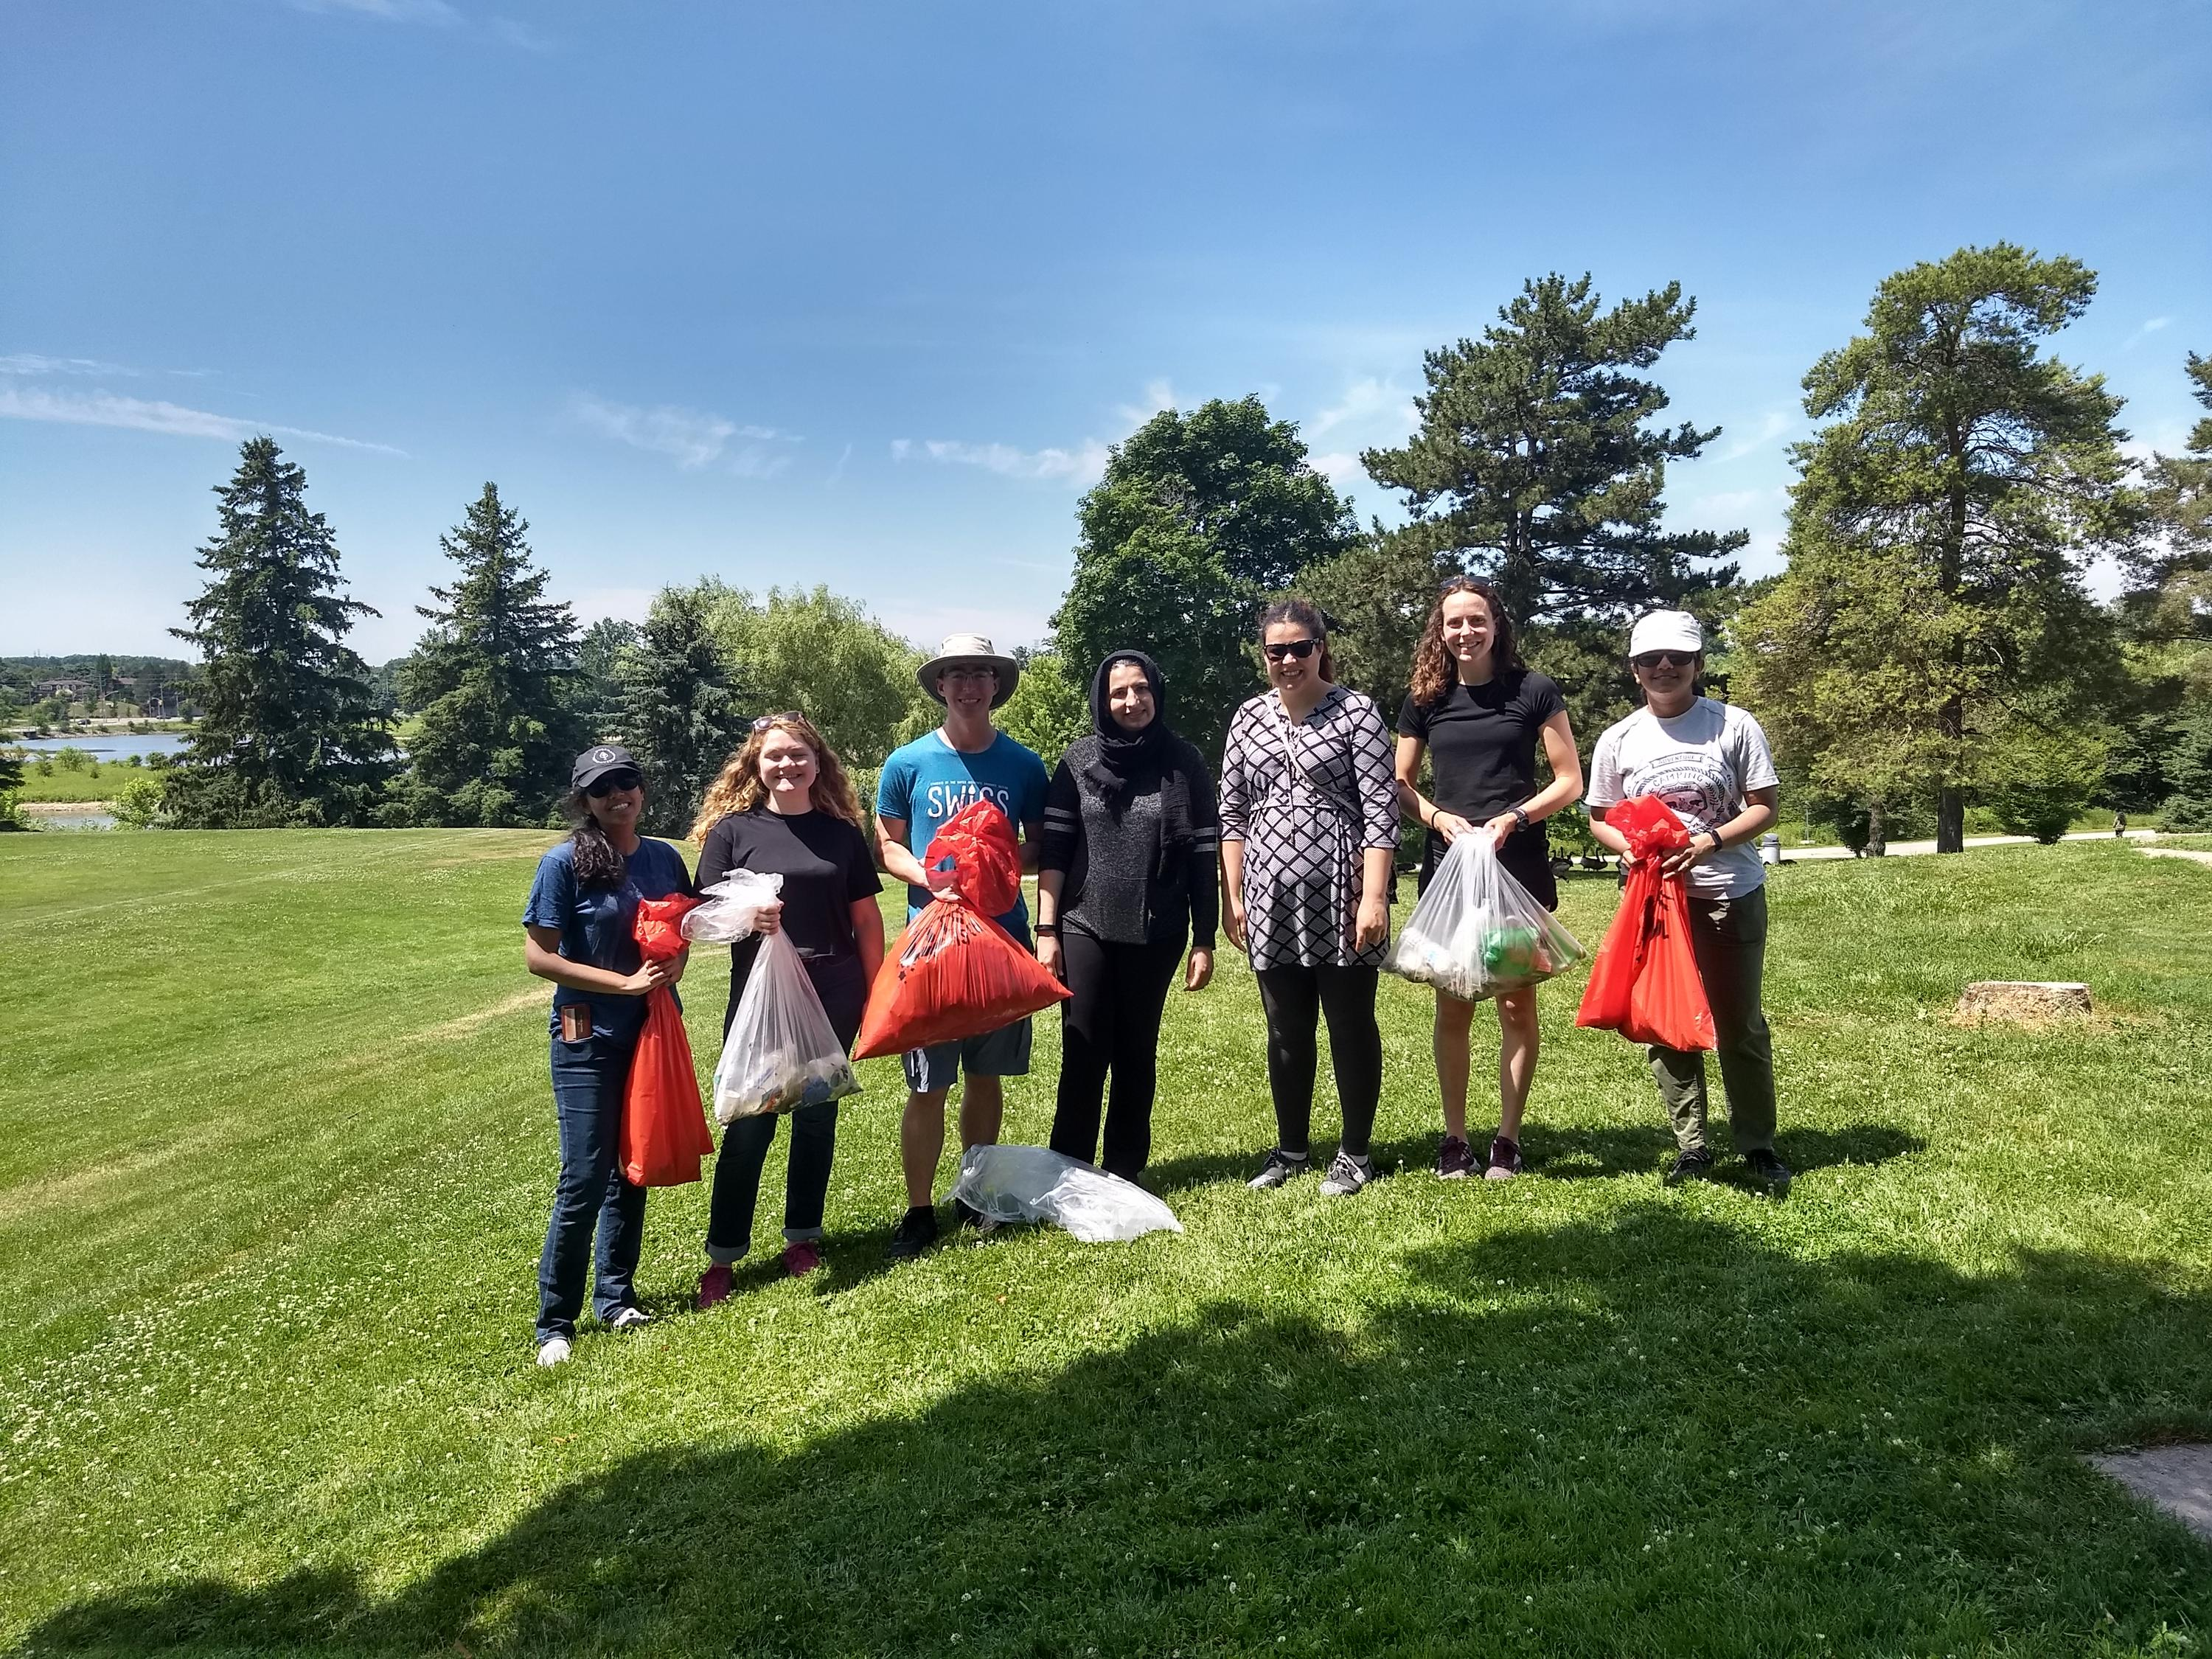 SWIGS cleans up litter at Columbia Lake